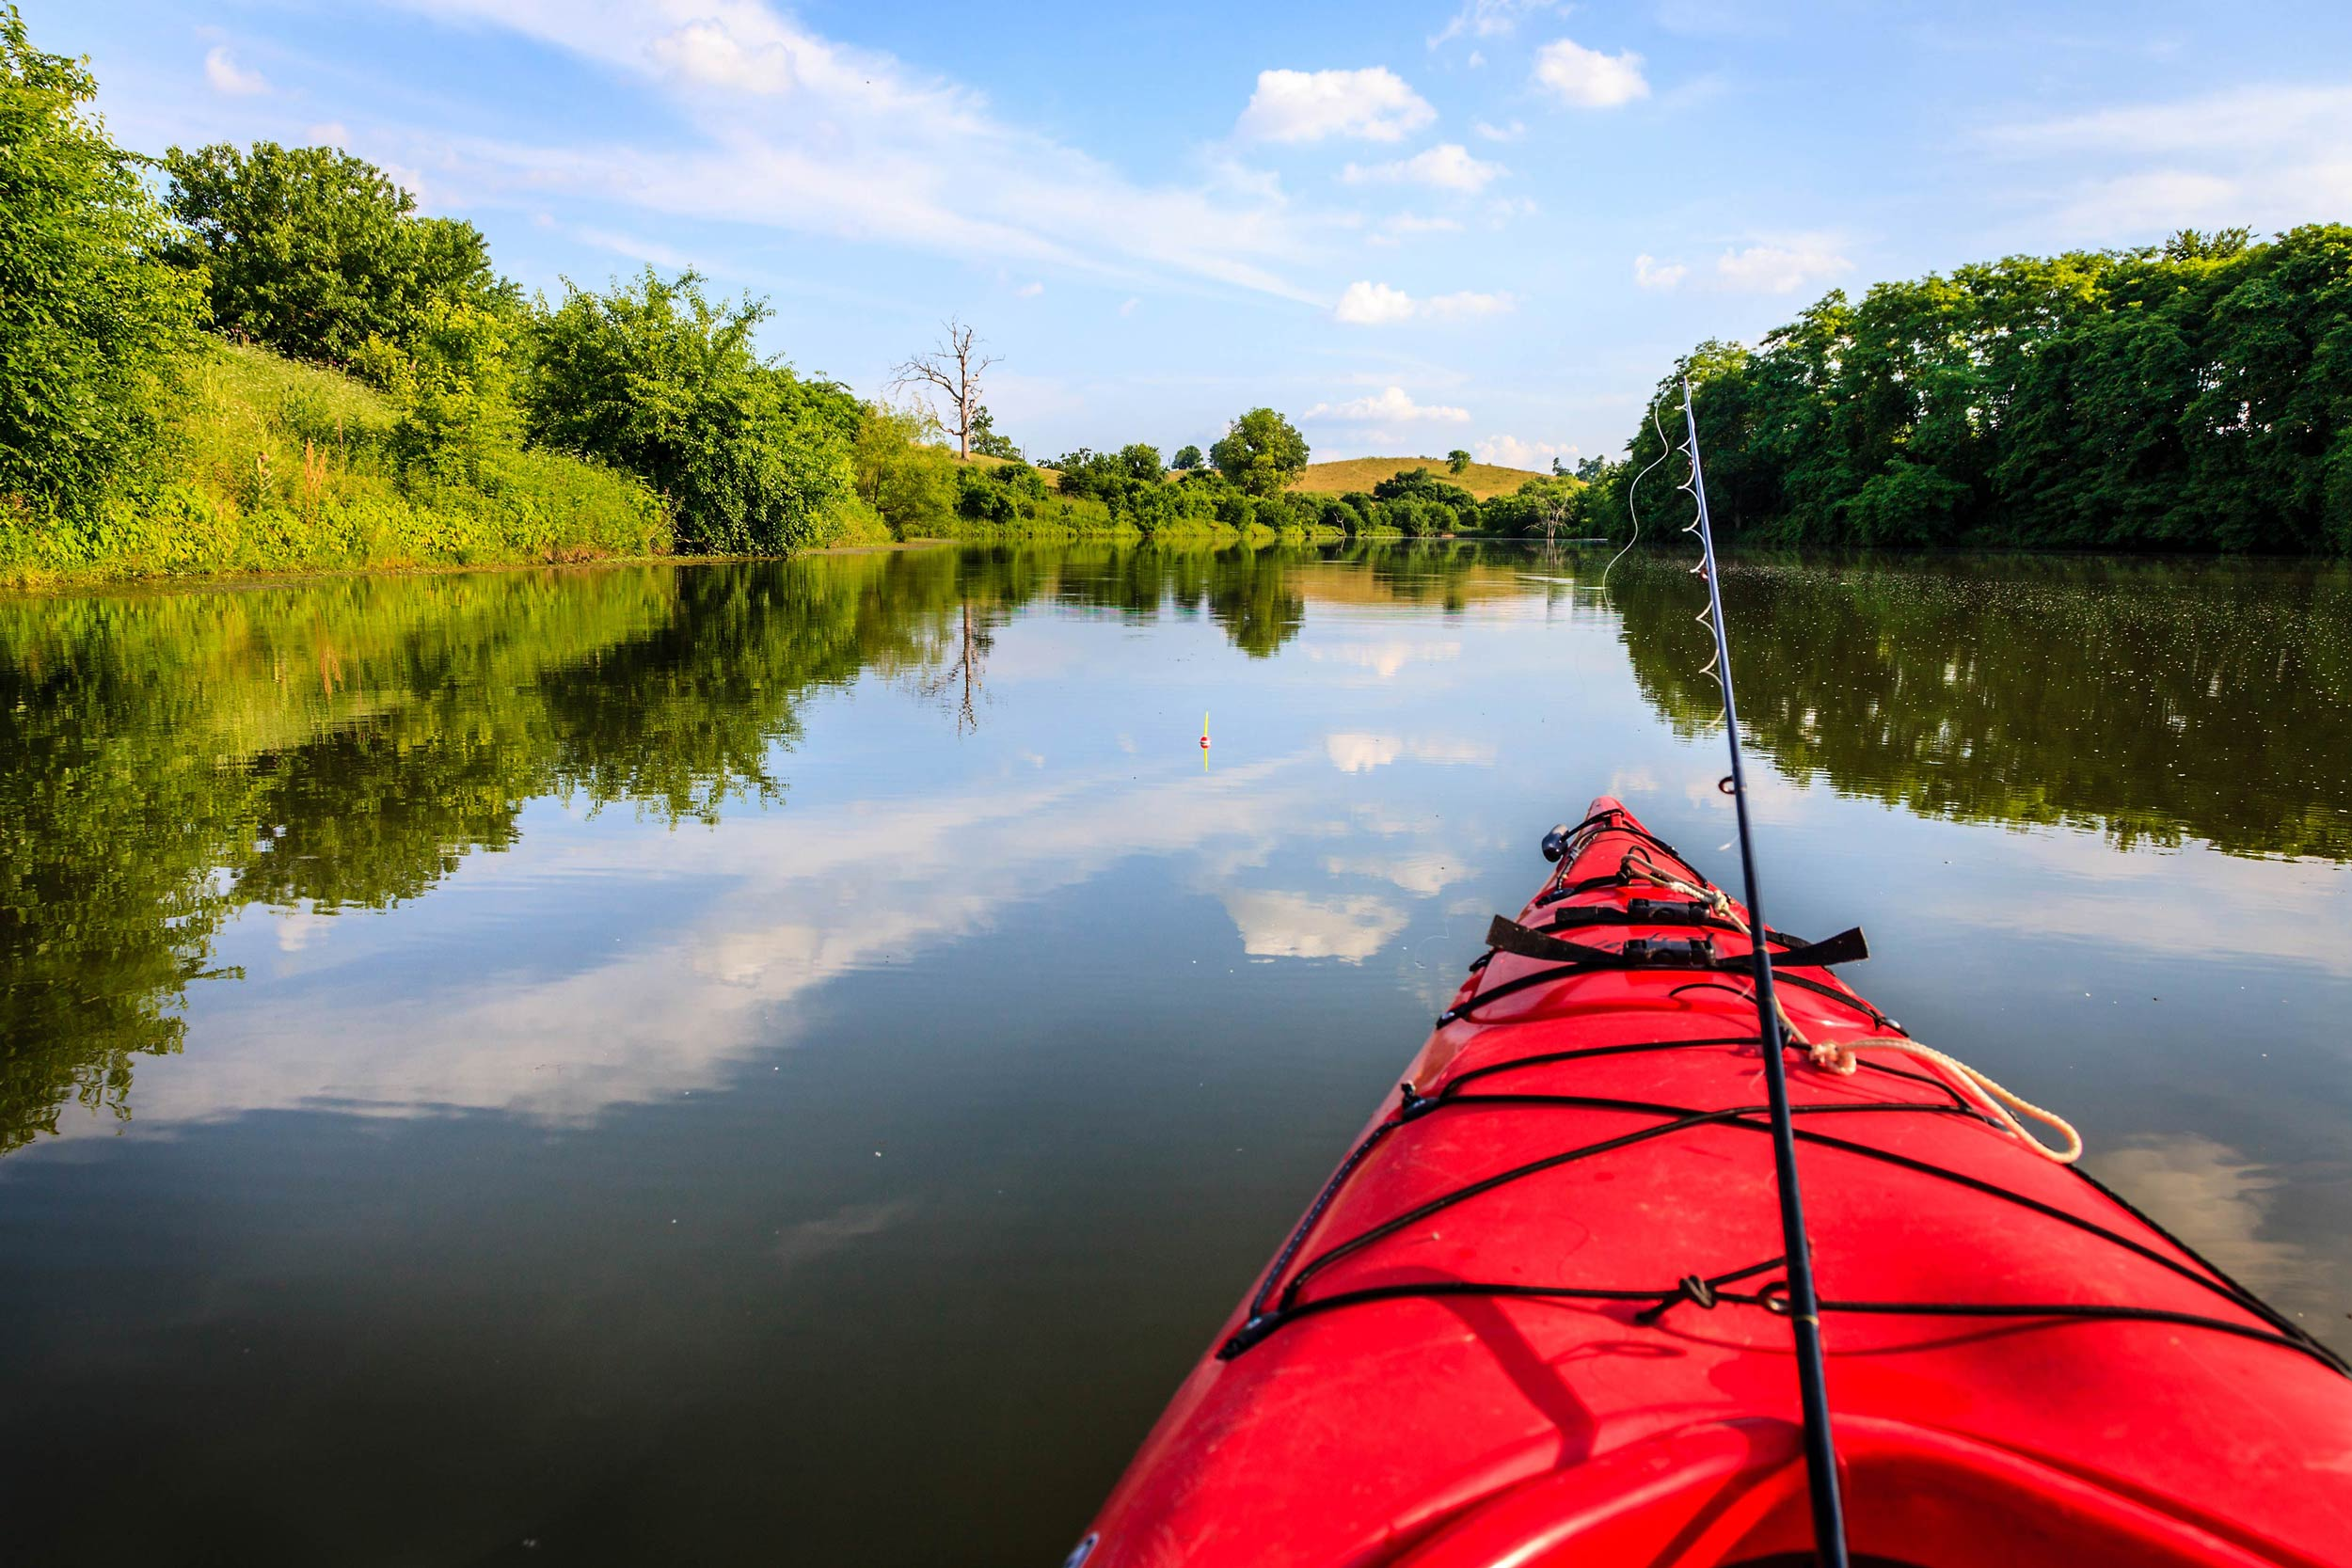 A photo showing the front of a kayak with a fishing rod propped in front and beautiful view